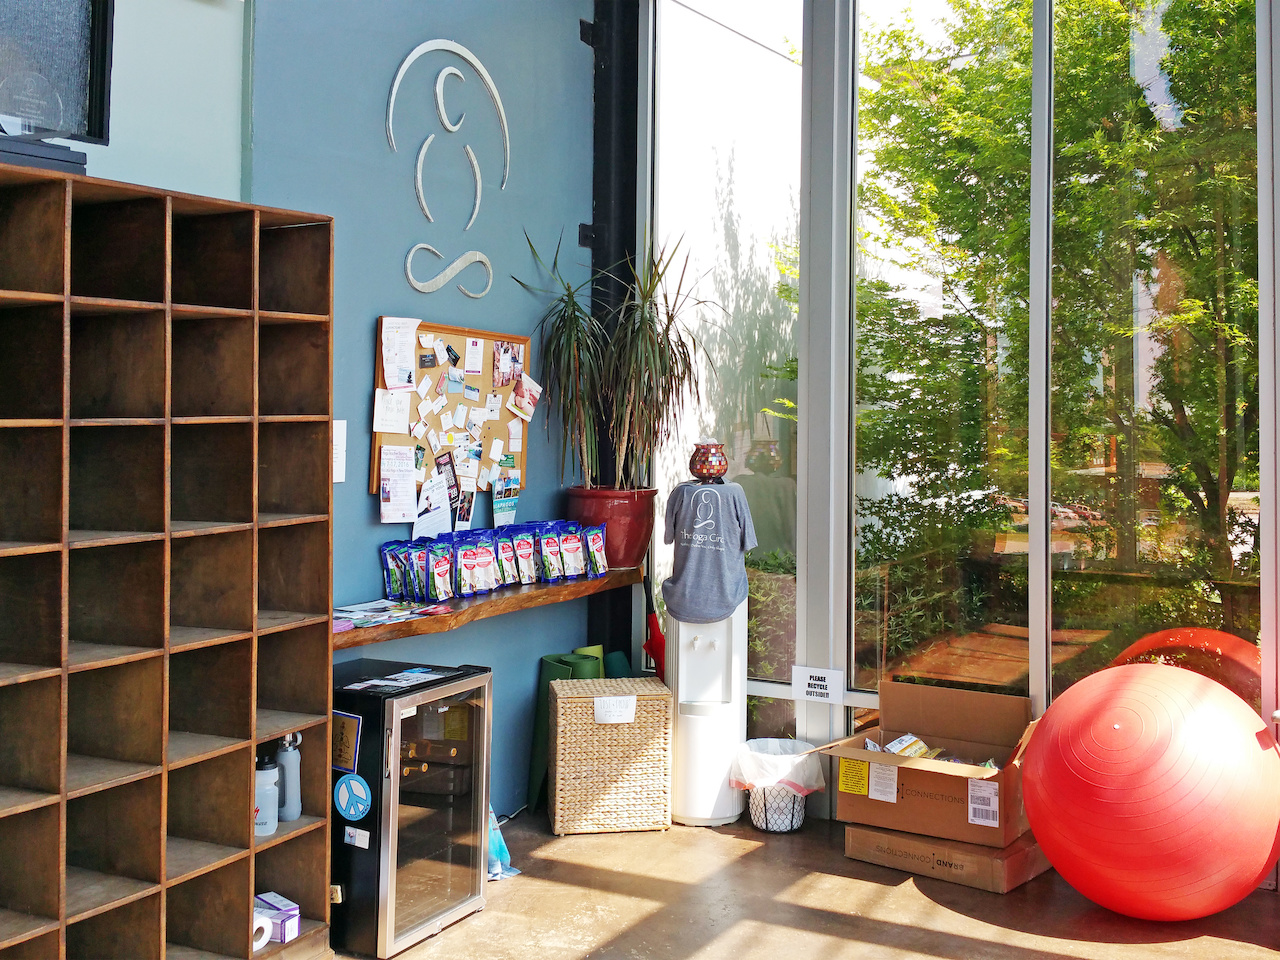 The large, airy sunroom studio at The Yoga Circle has cubbies, water and energy snacks, as well as an exercise ball and weights.